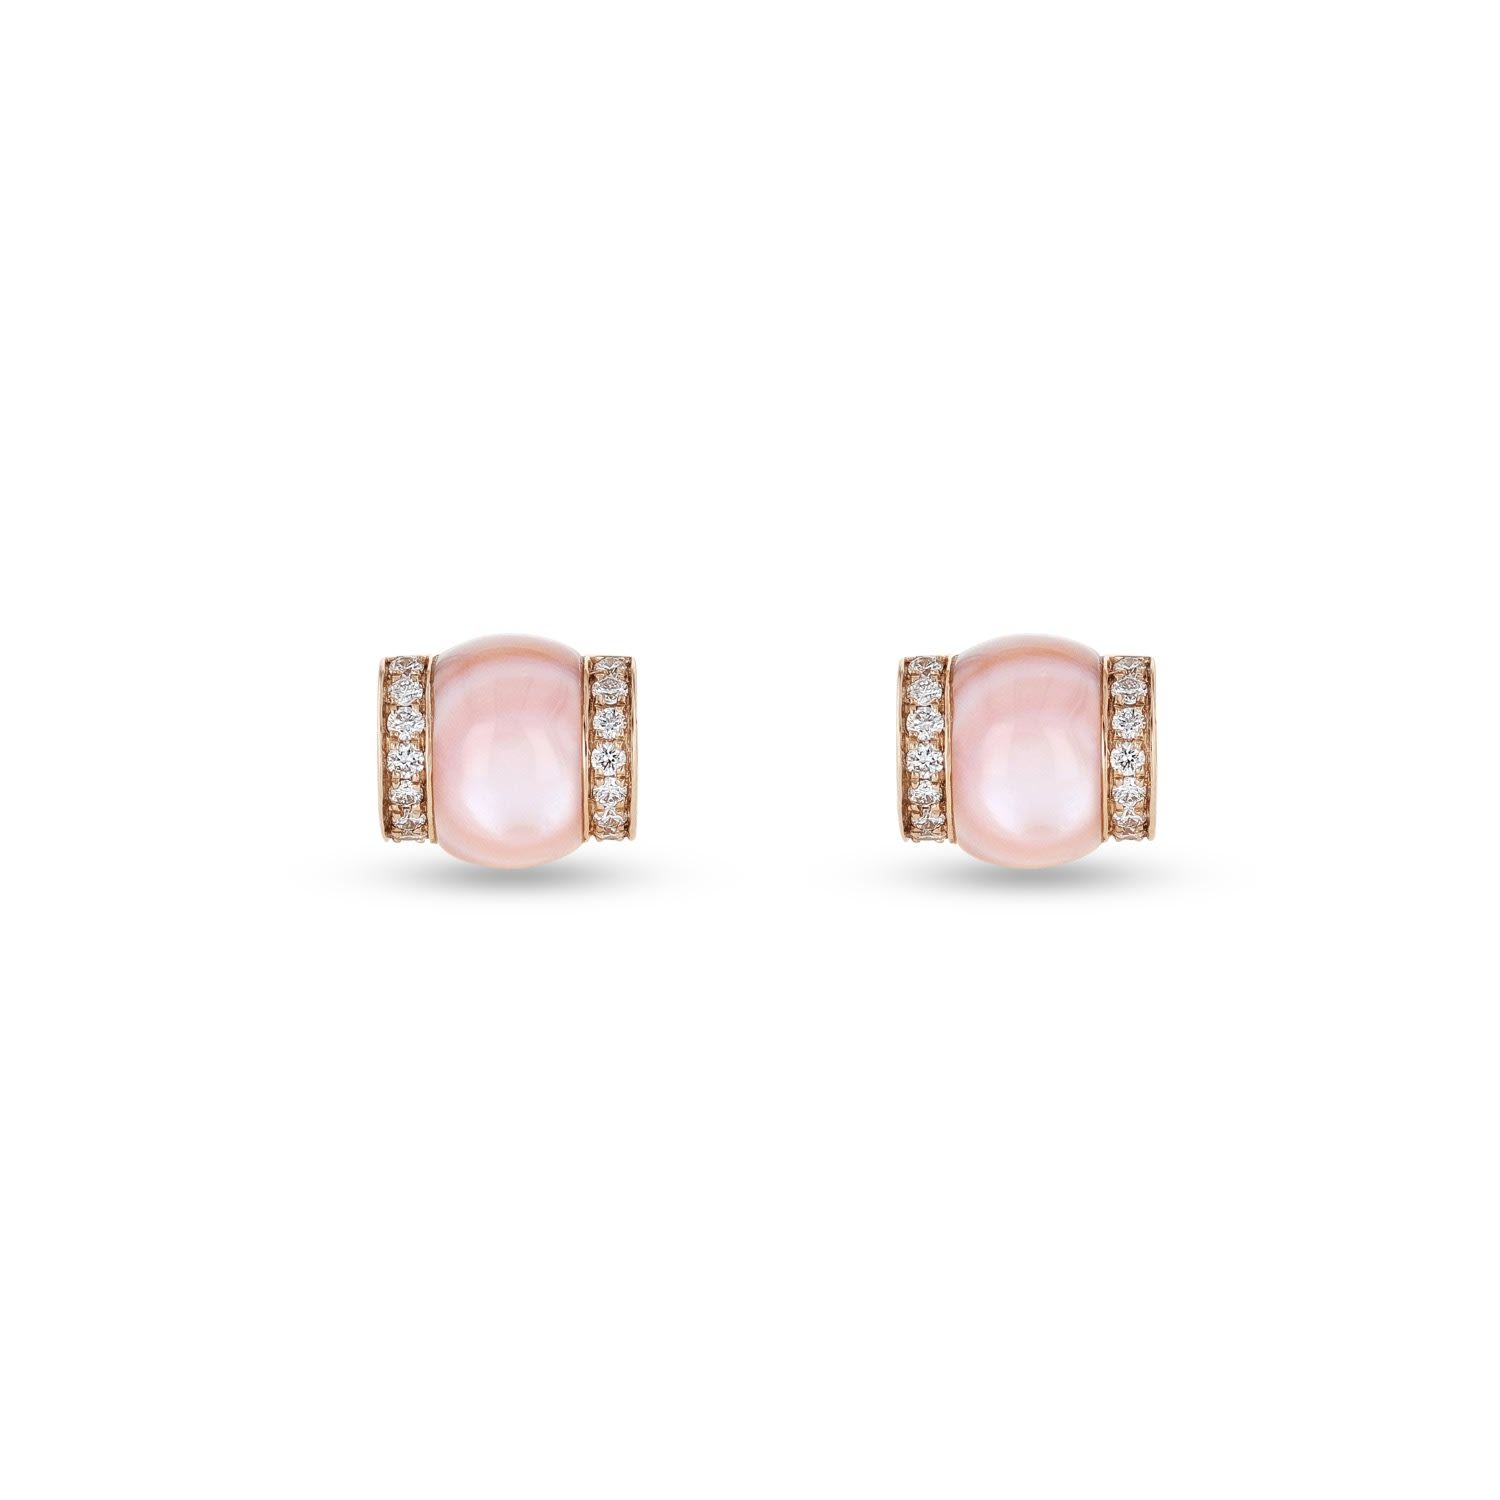 Pink mother of pearl, around 2.8 ct, diamonds: a total of 0.013ct, vs-si clarity, ugh color. Set in rose gold 18kw around 3.10G Avoid alcohol contact with the gemstone.